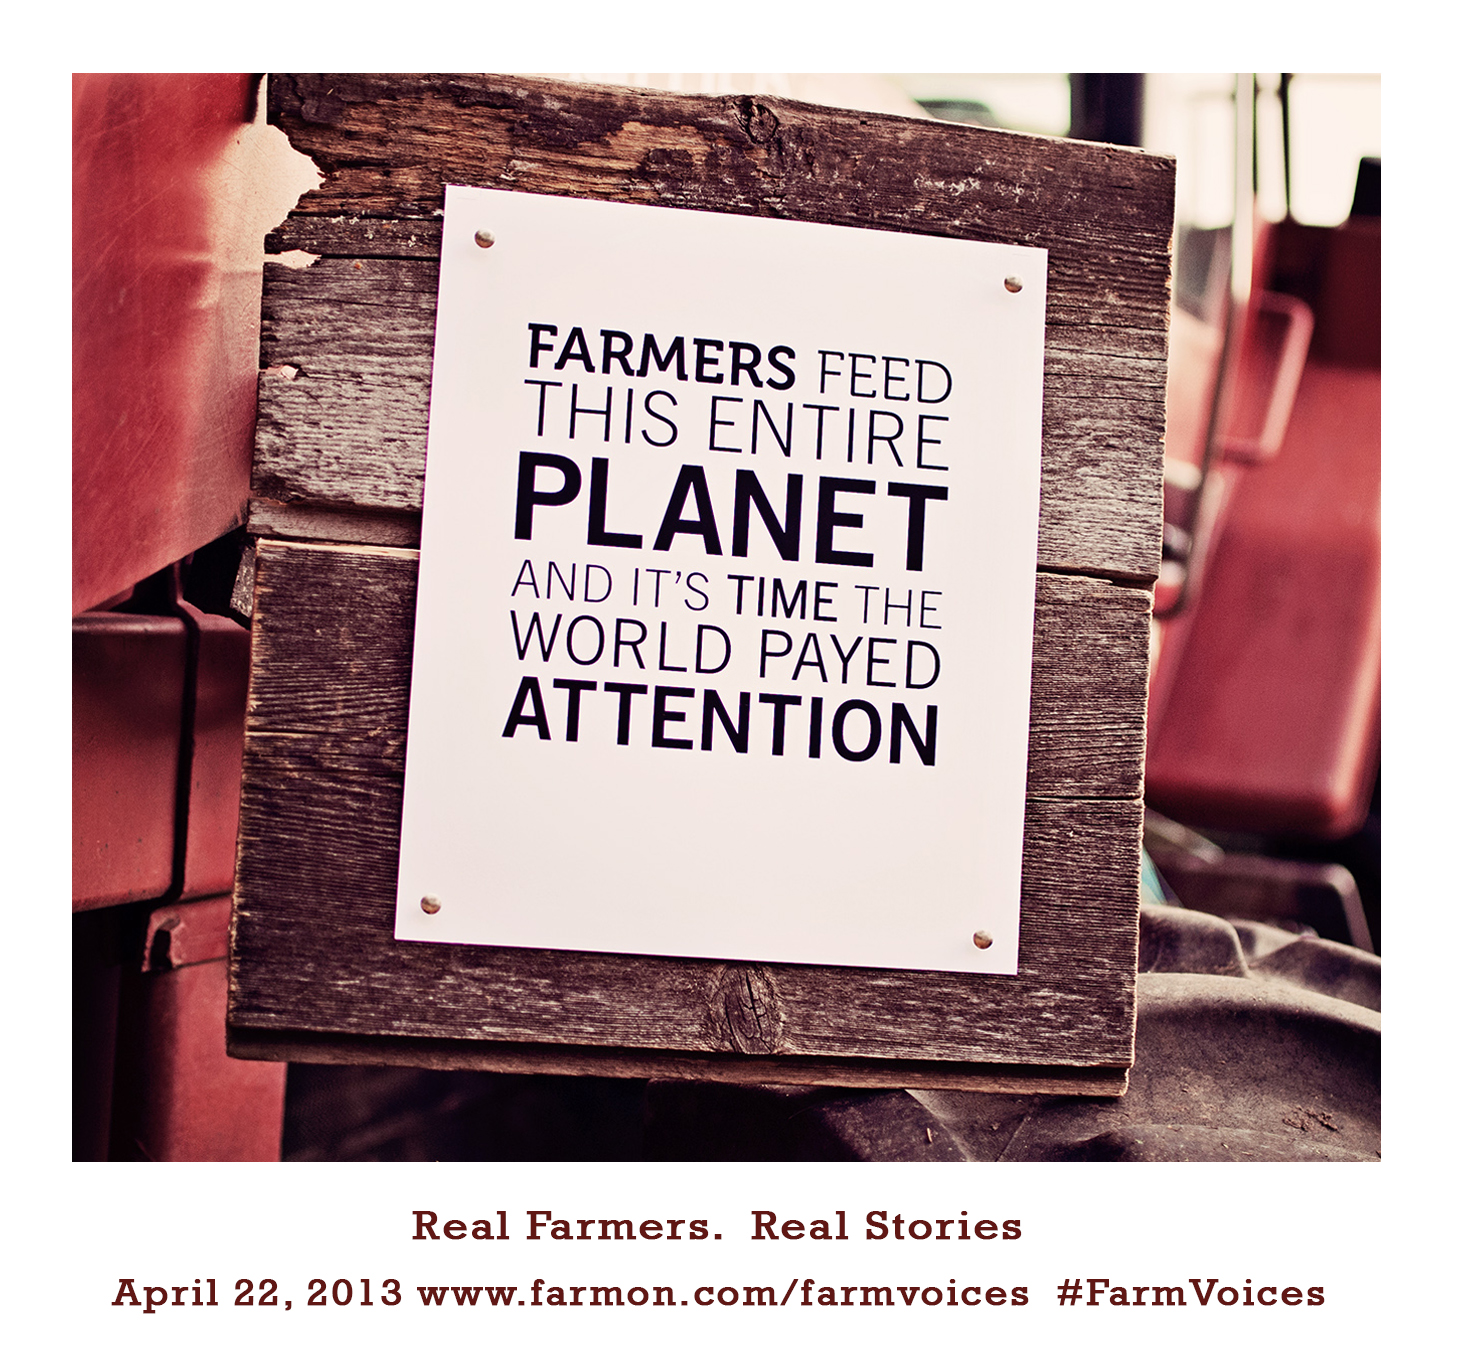 Farmers Day Quotes: An Opportunity For #FarmVoices